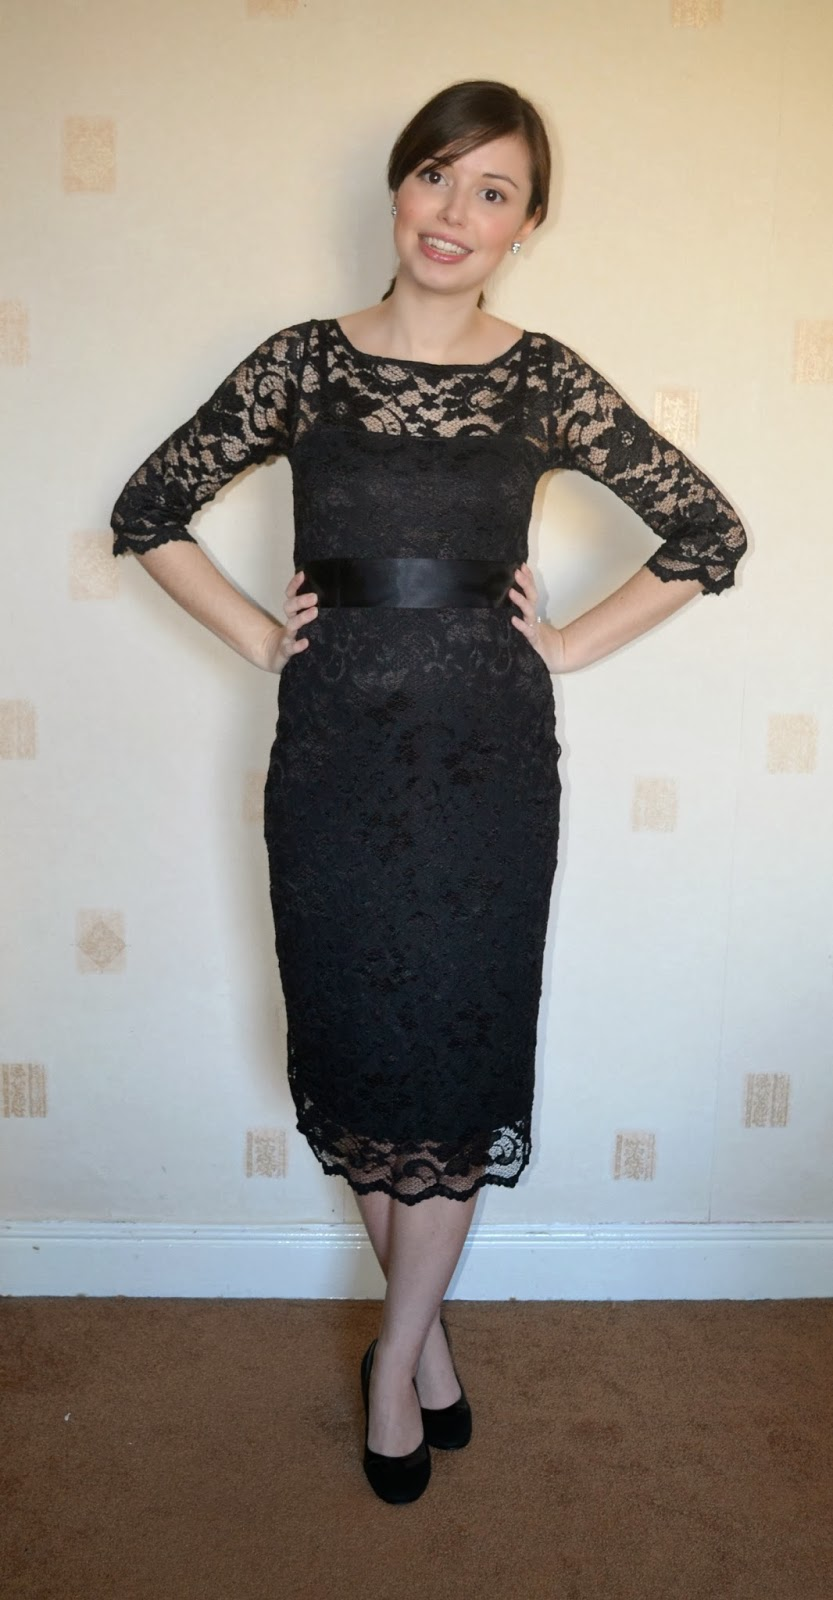 7fe49dc303ec4 I love the lace overlay and I feel like a princess when I'm wearing it. It  honestly makes me smile and feel good. Another thing I love about the dress  is ...